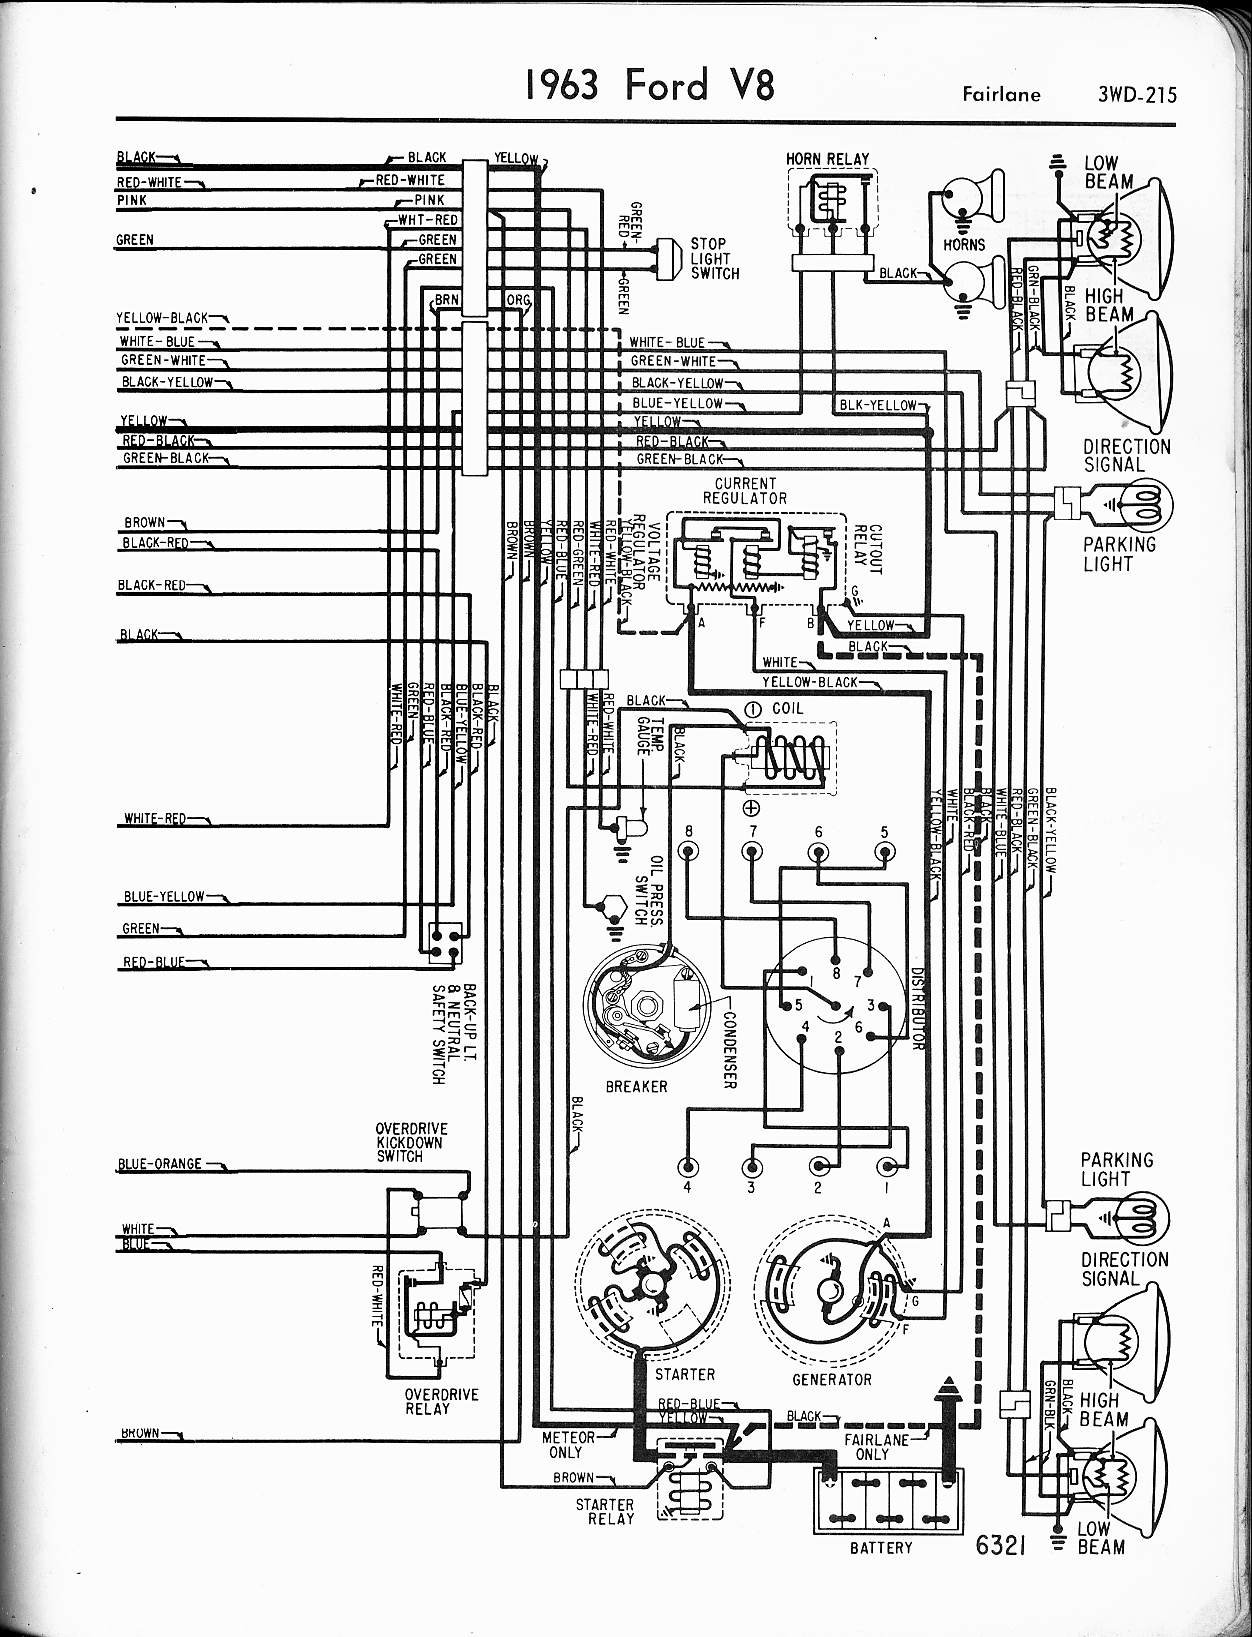 ford v8 thunderbird 1963 complete wiring diagram all about wiring